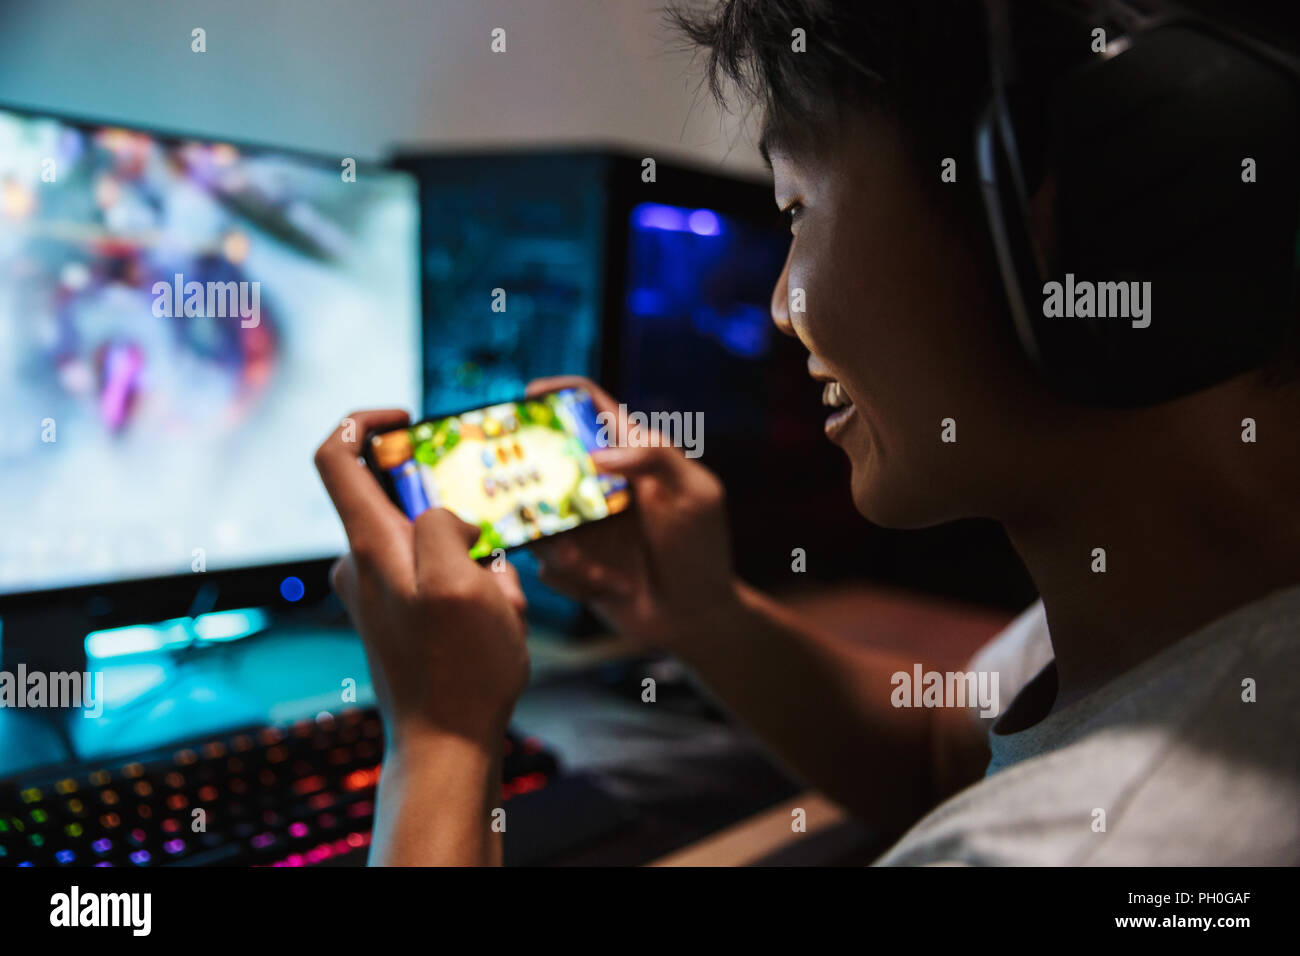 Photo of joyous gamer boy playing video games on mobile